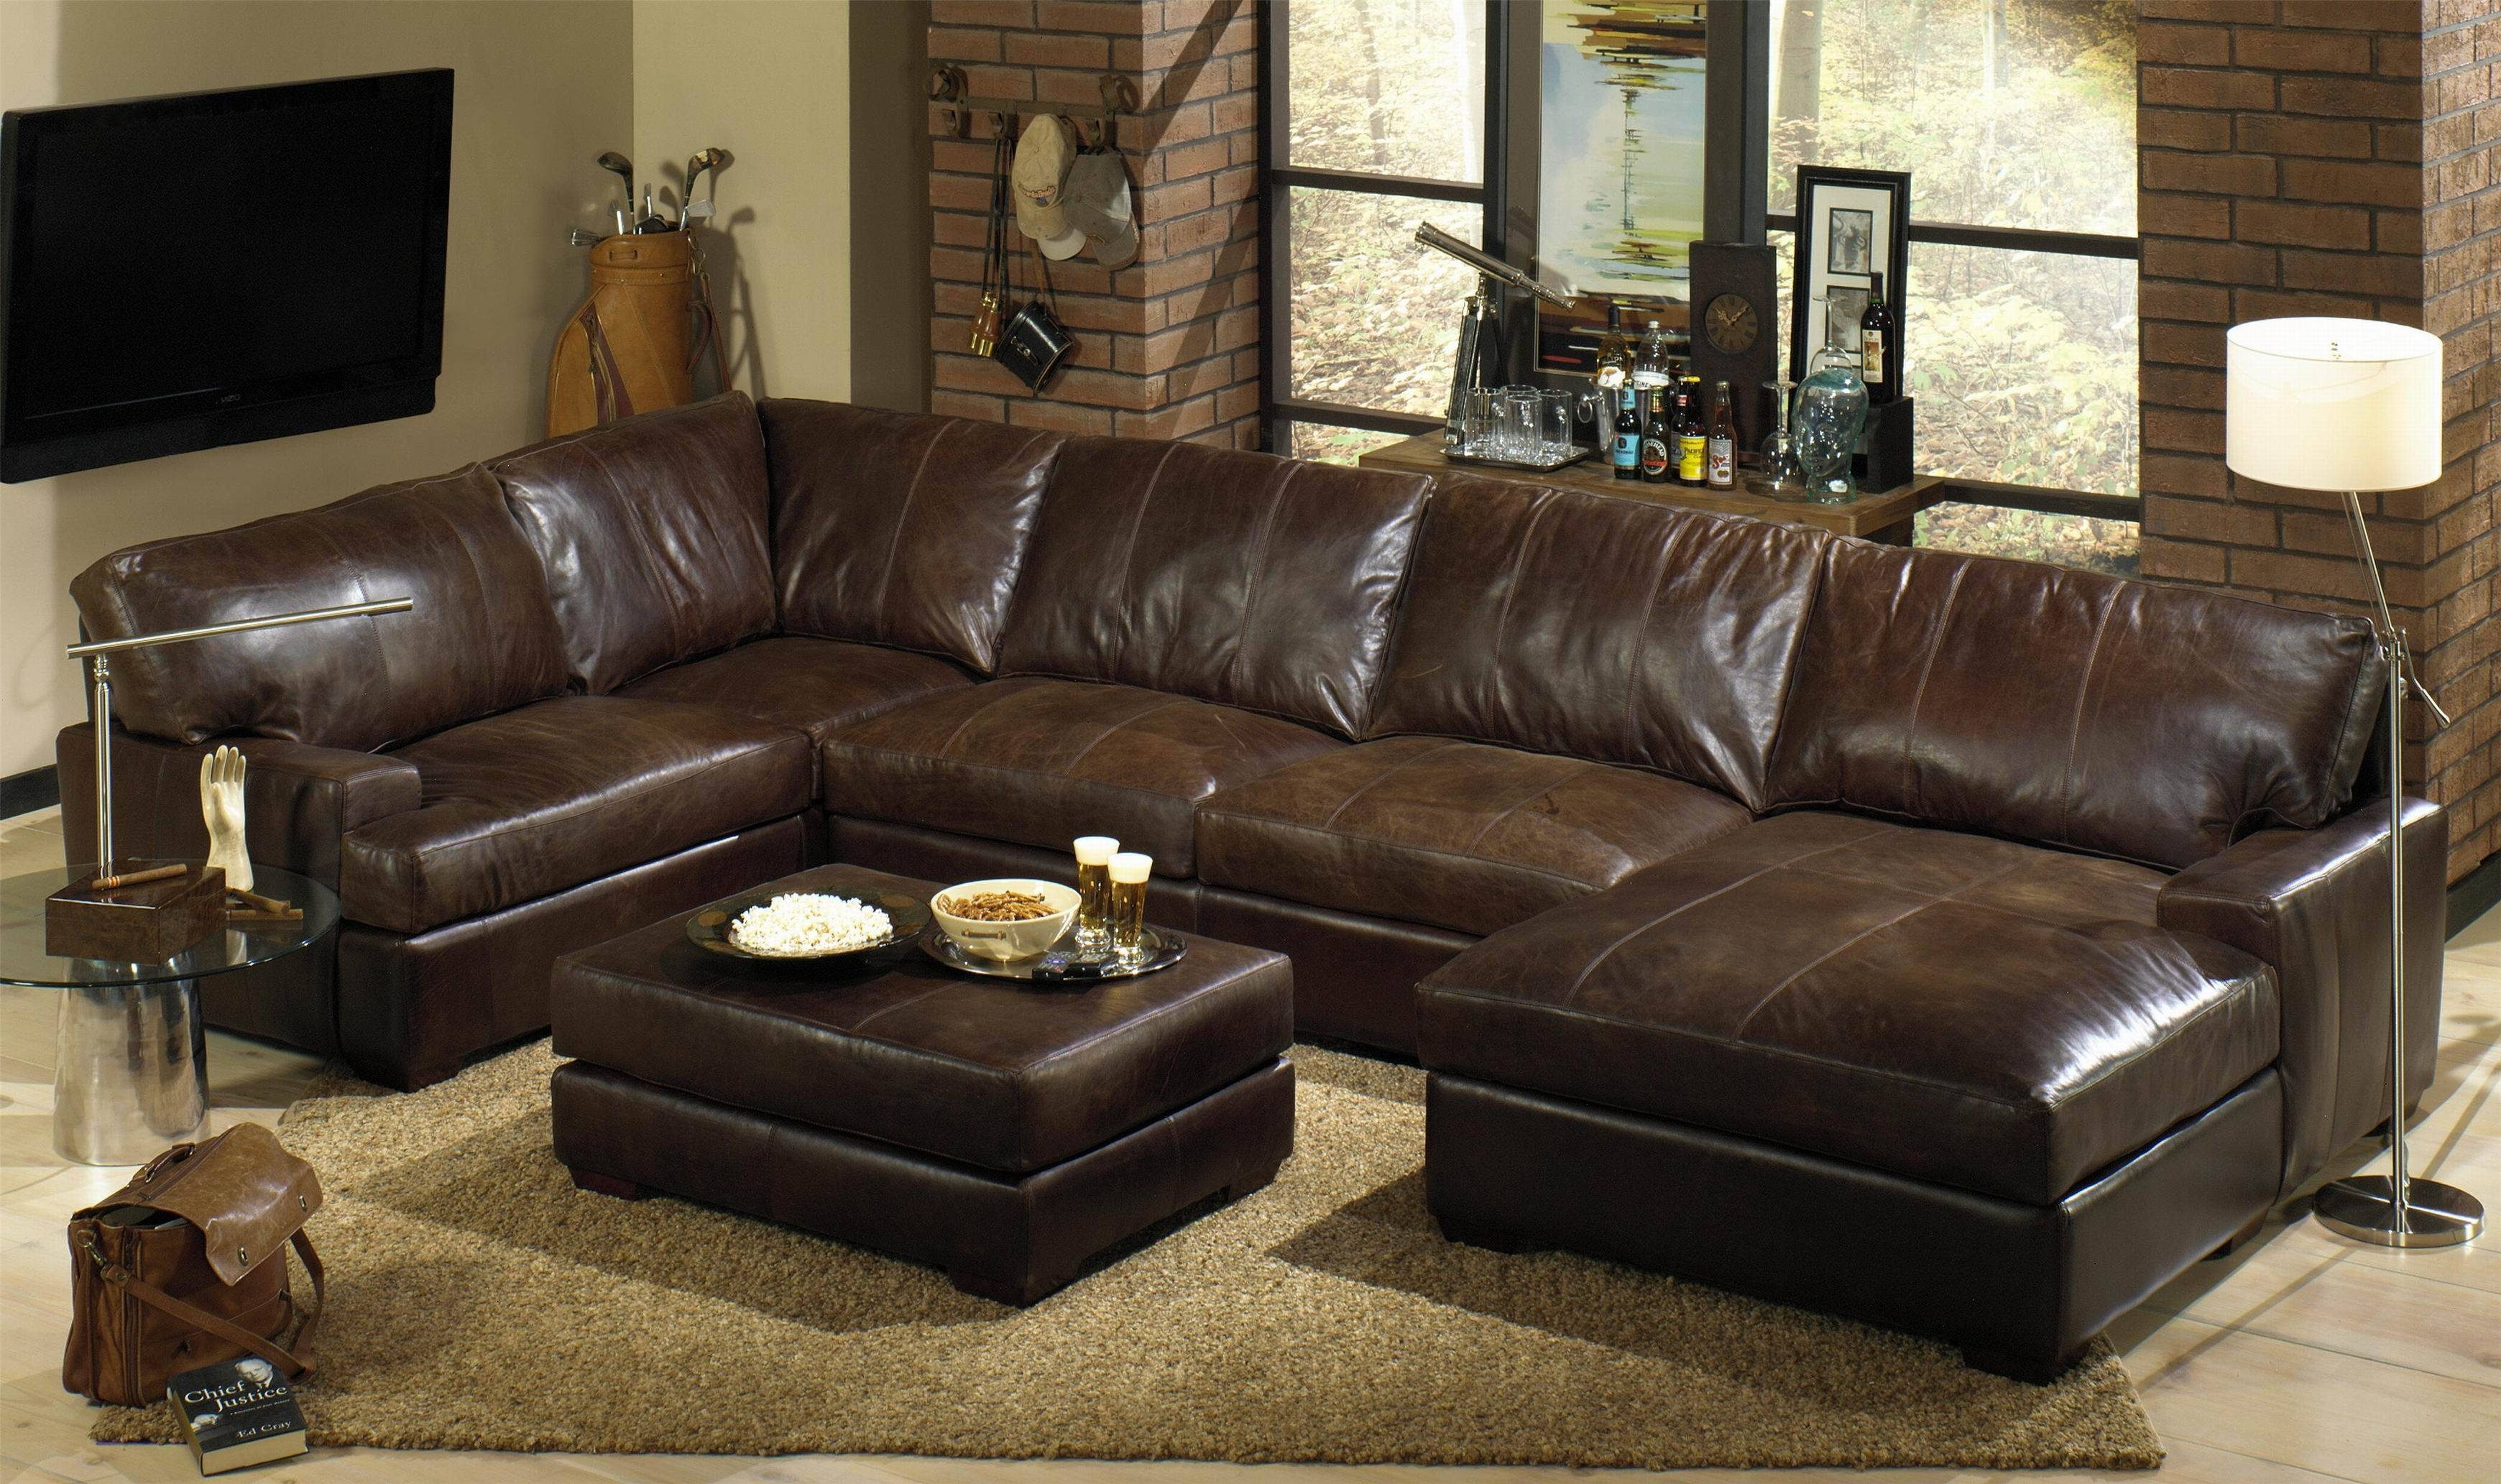 Bedroom Comfortable Costco Leather Couches Make Cozy Living Room Inside Leather Motion Sectional Sofa ( : leather motion sectional sofa - Sectionals, Sofas & Couches